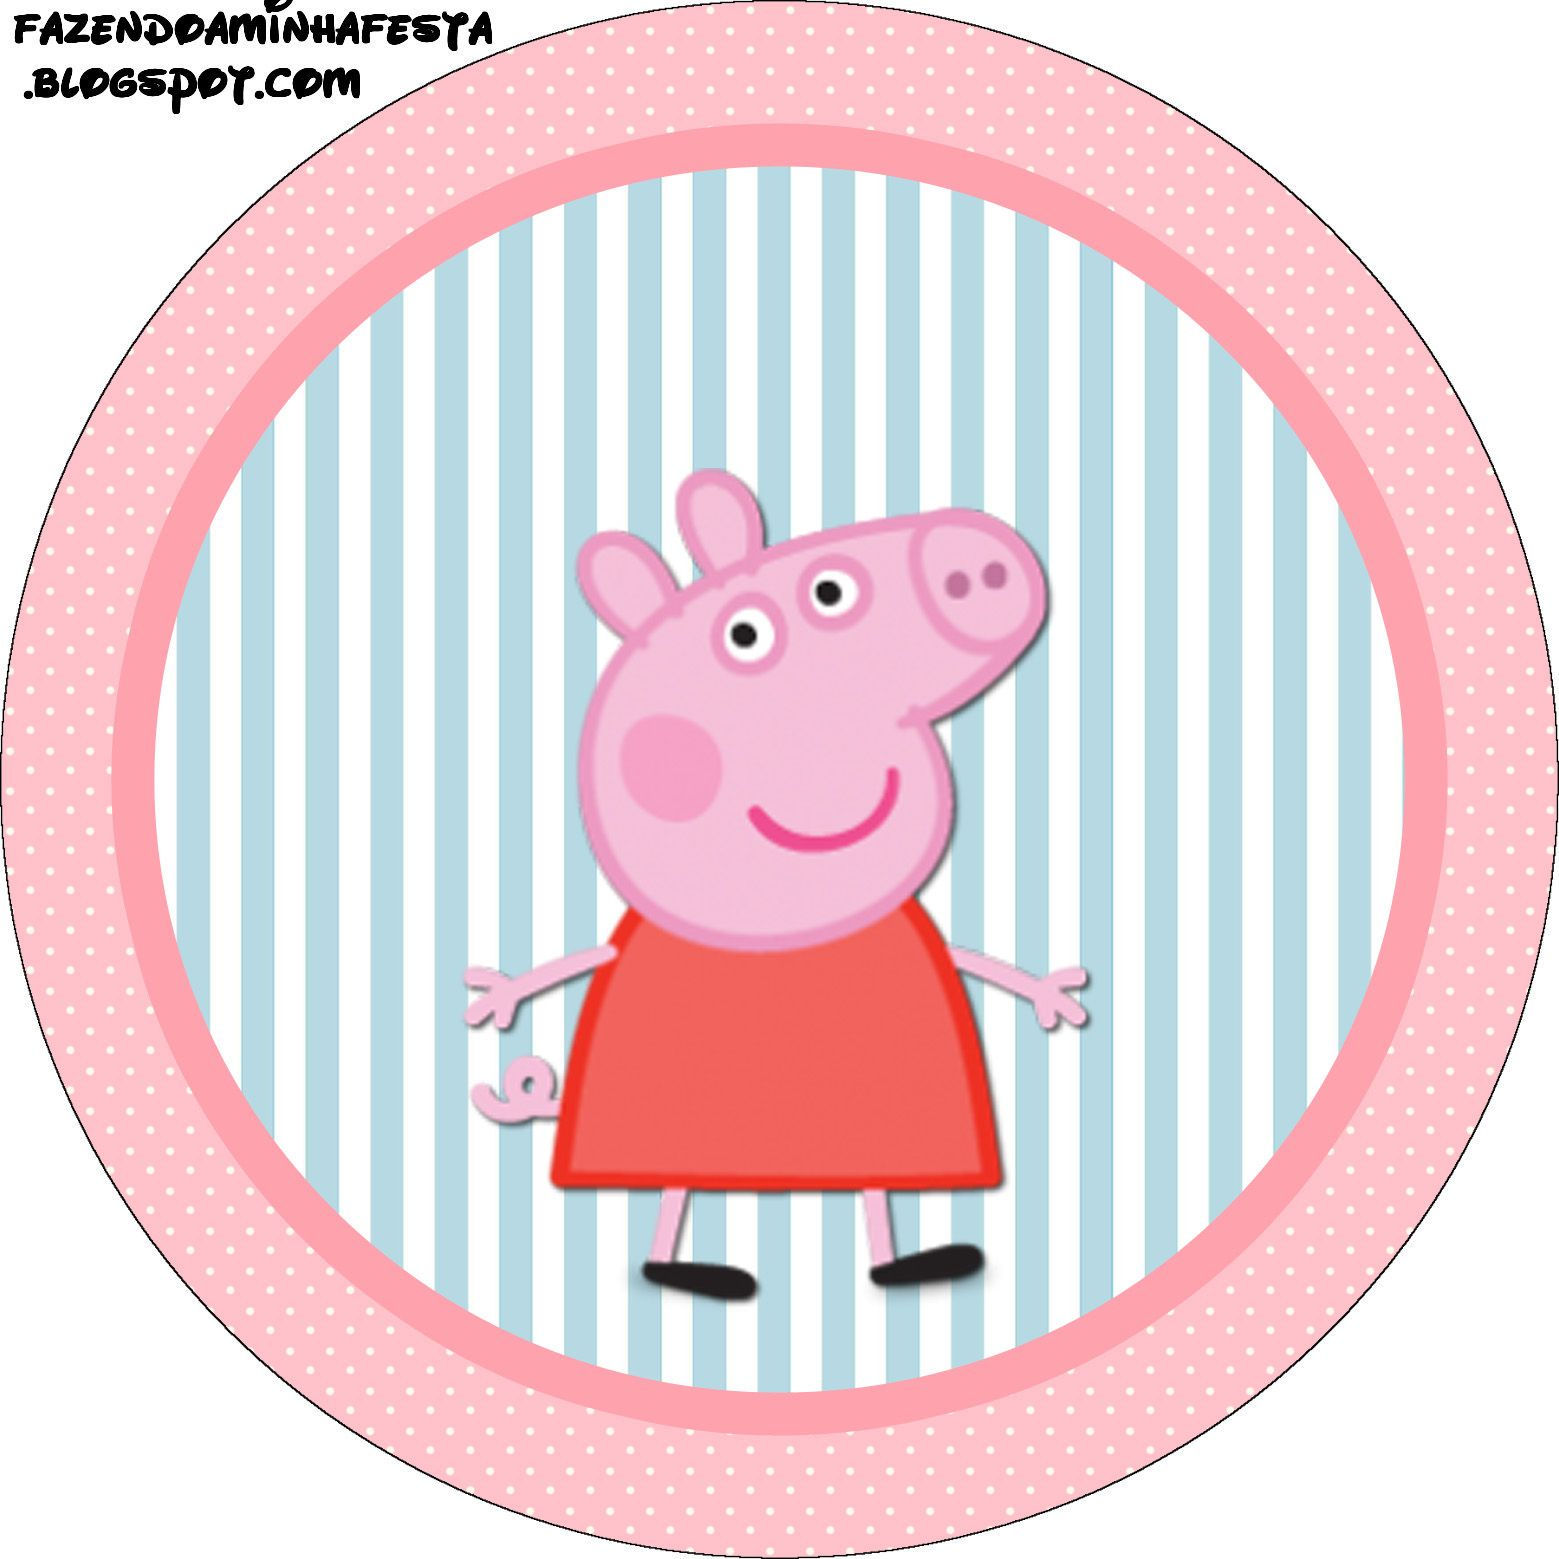 peppa pig free printable labels and toppers is it for parties